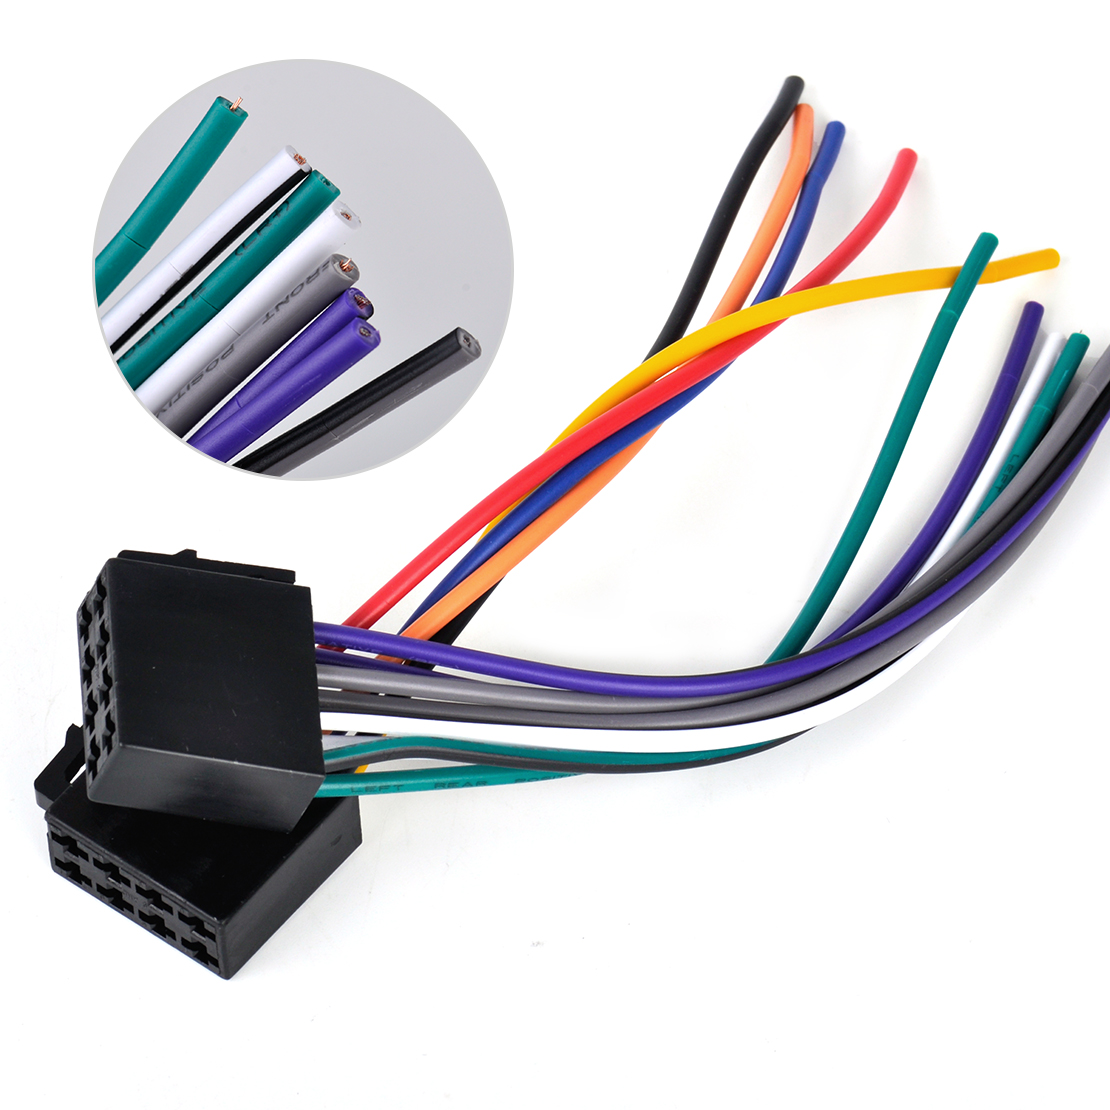 Citall Iso Radio Wire Harness Female Adapter Connector Cable For Car Bmw Wiring Stereo System Mercedes Audi Vw Toyota Nissan Kia In Cables Adapters Sockets